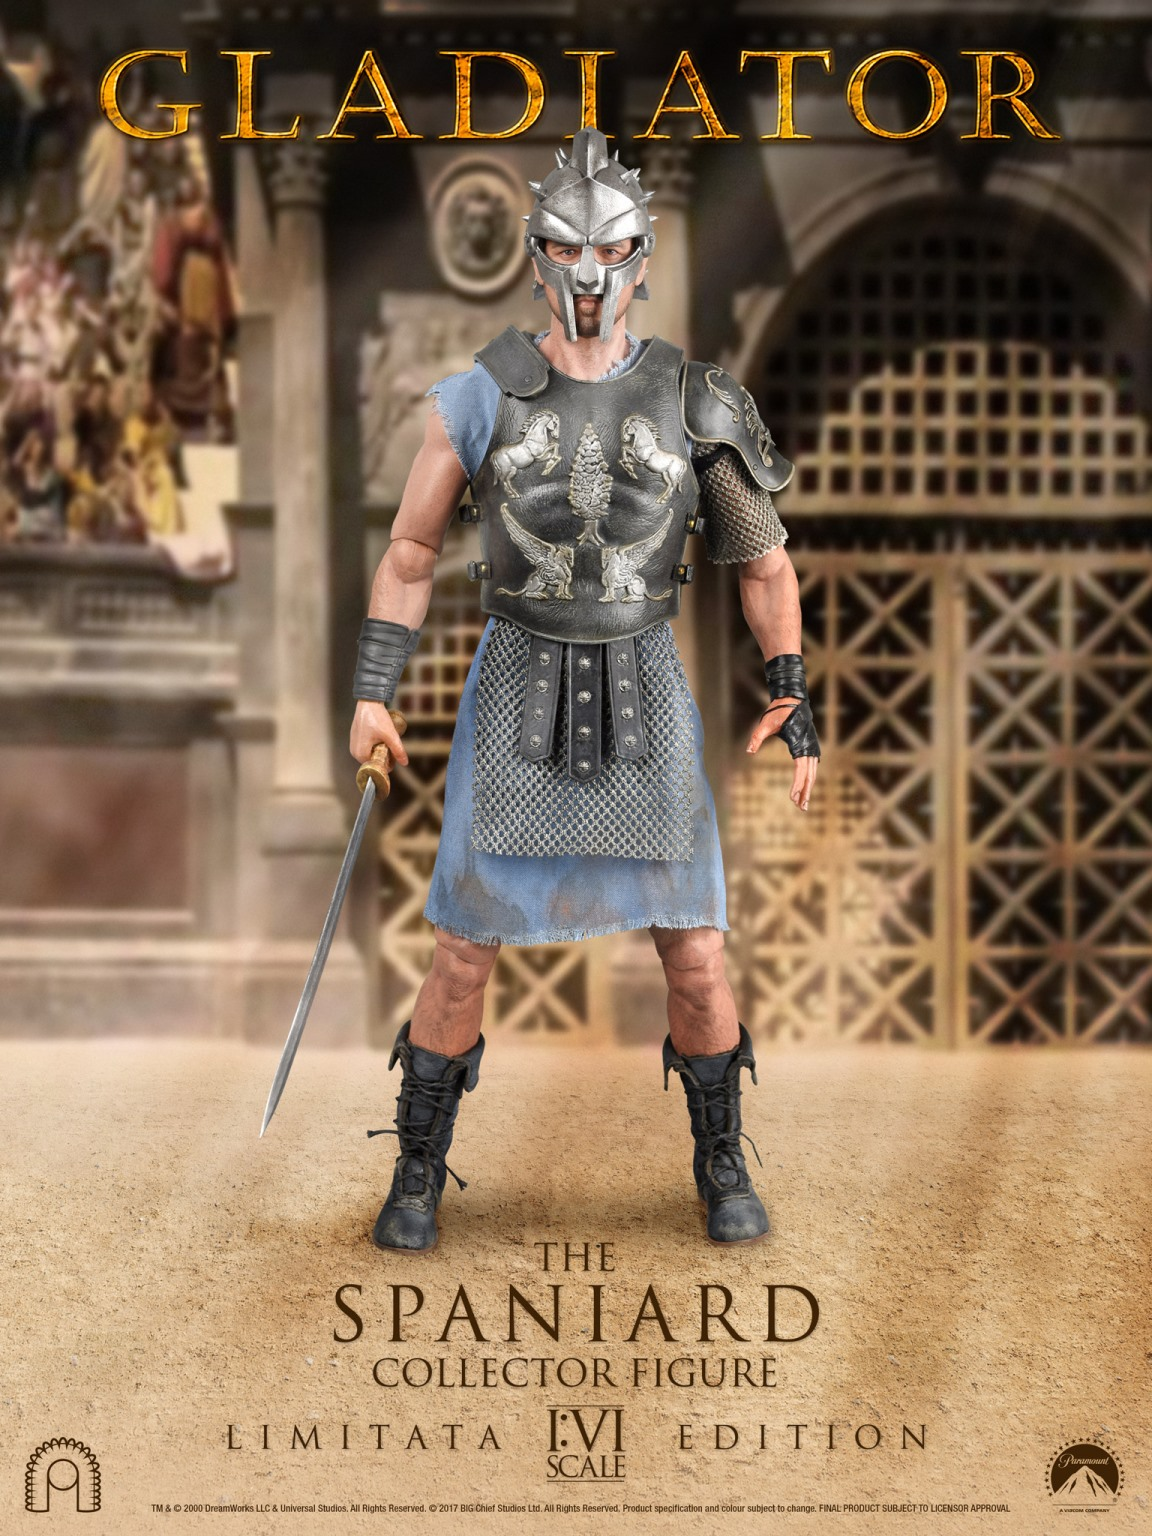 GLADIATOR the SPANIARD LIMITED EDITION 16 Action Figure 12 BIG CHIEF STUDIOS  Edicollector